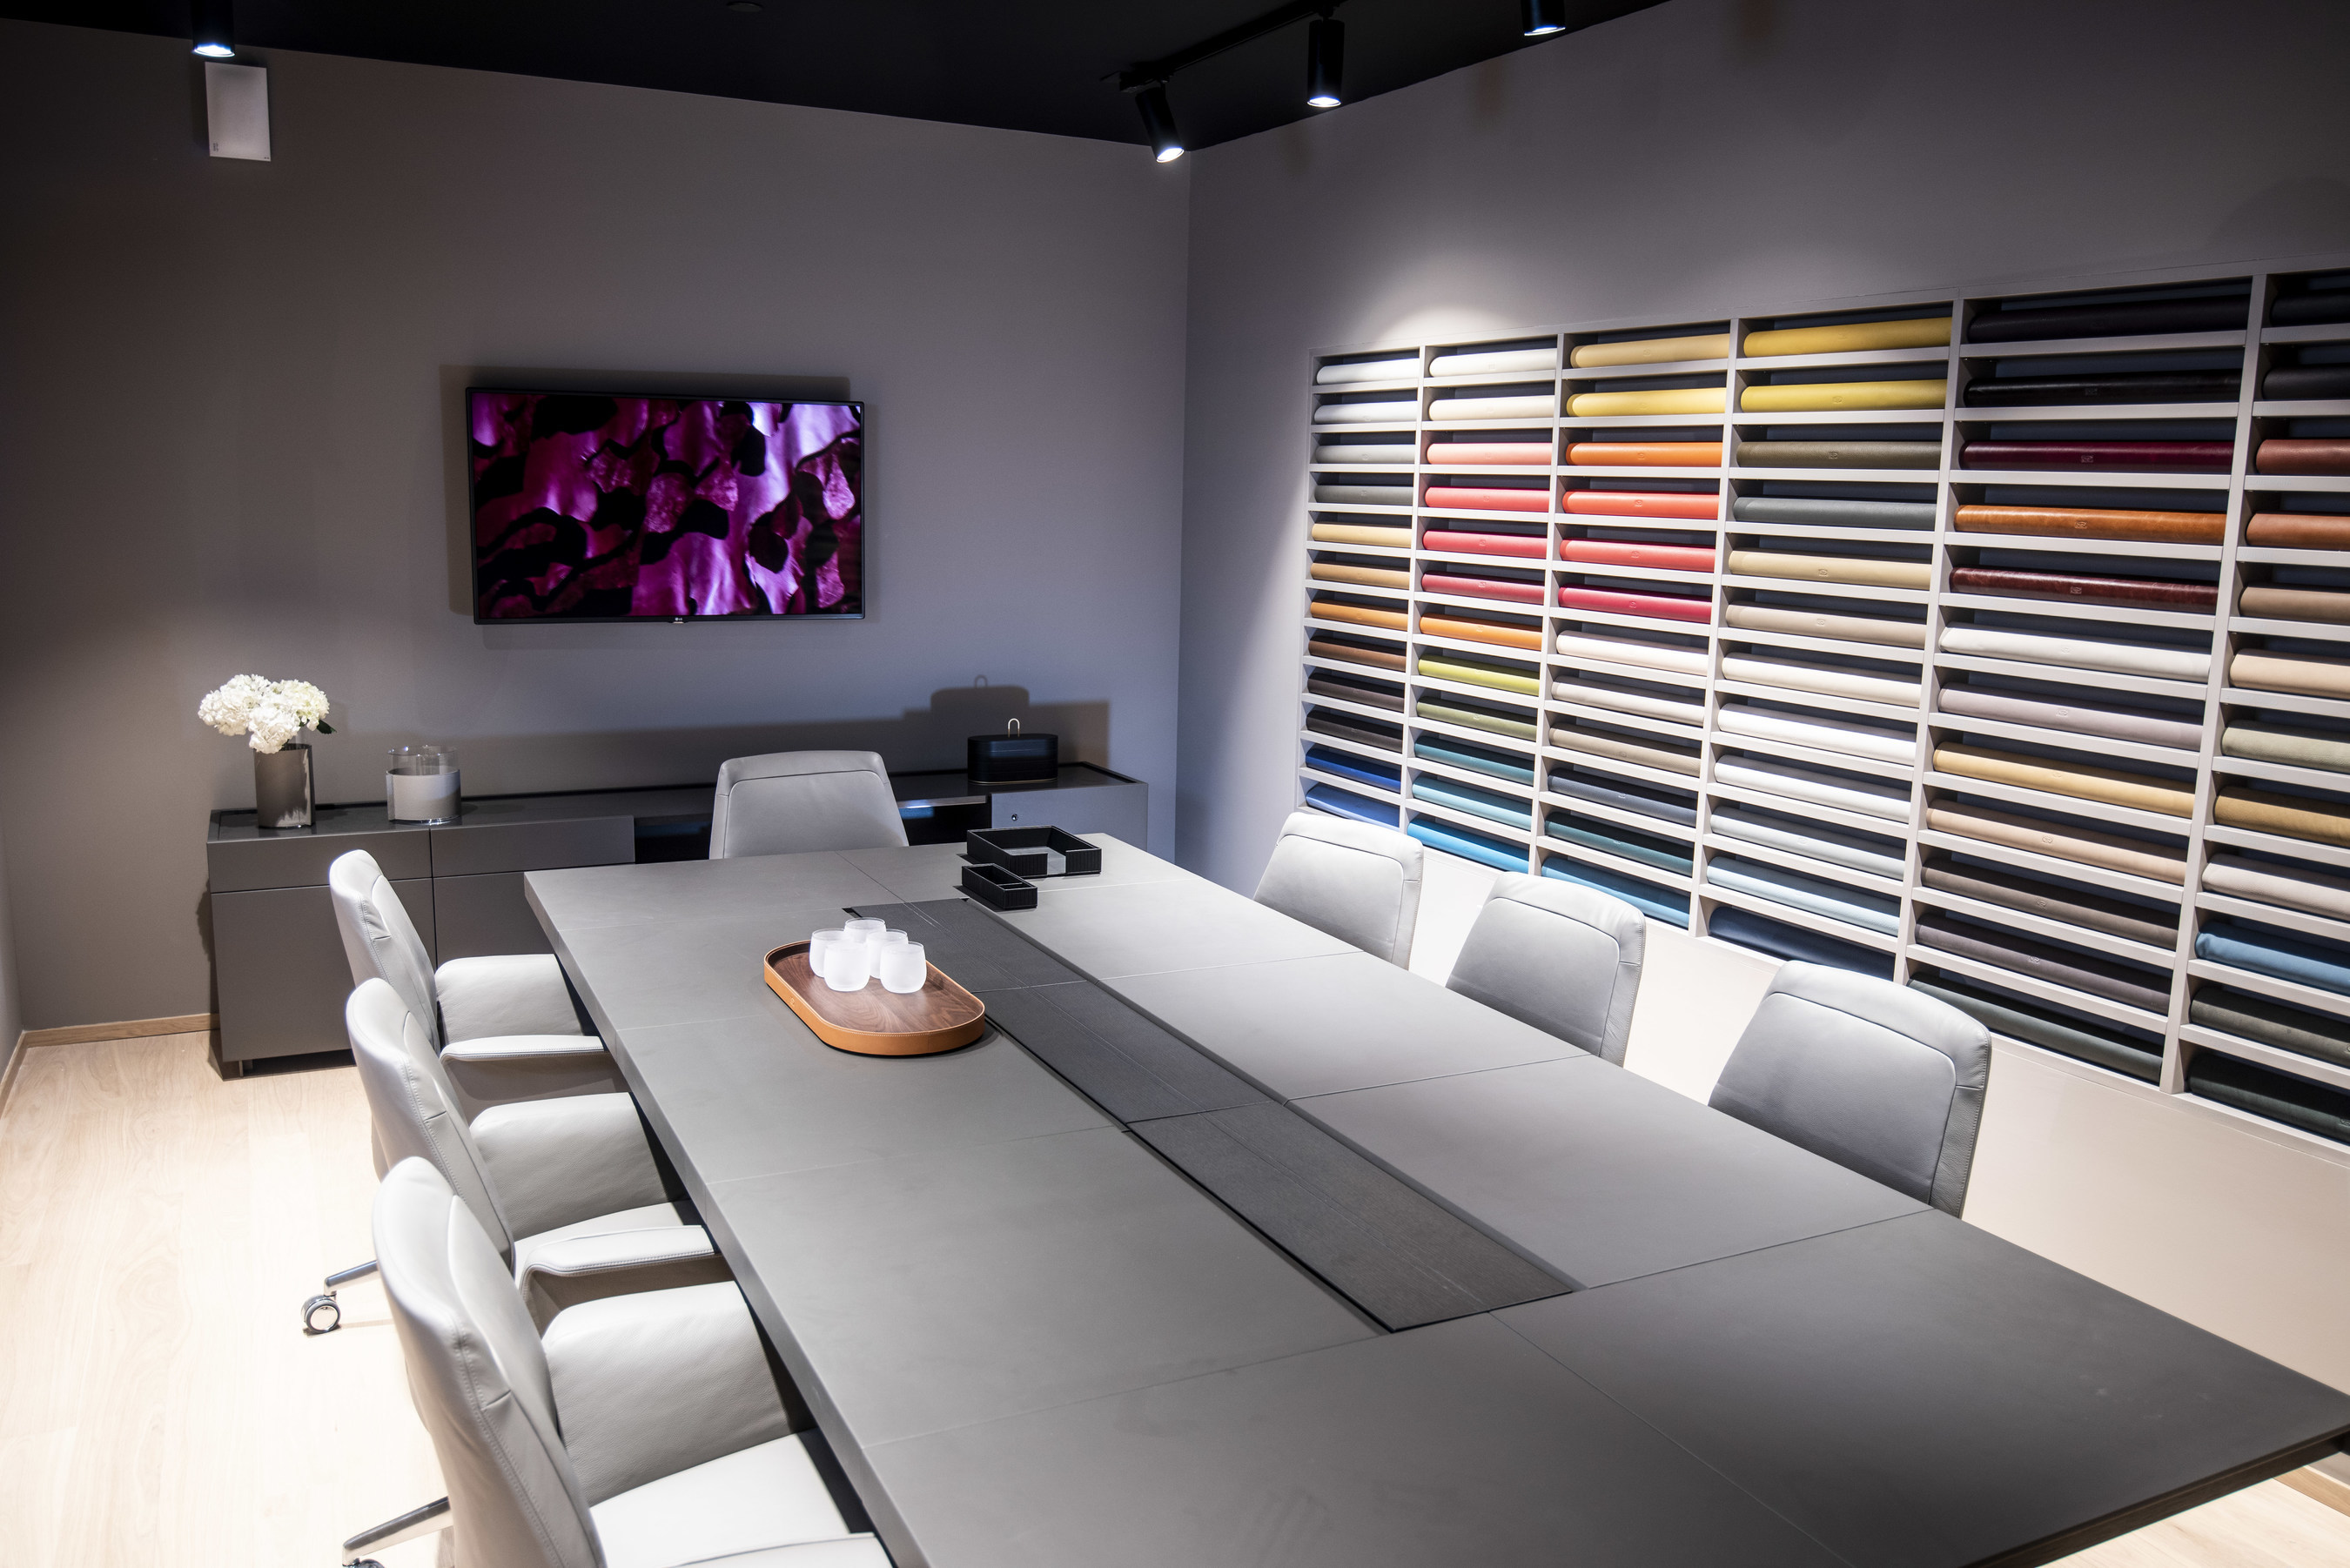 Poltrona Frau Design Bank.Poltrona Frau Celebrates New Showroom In West Hollywood